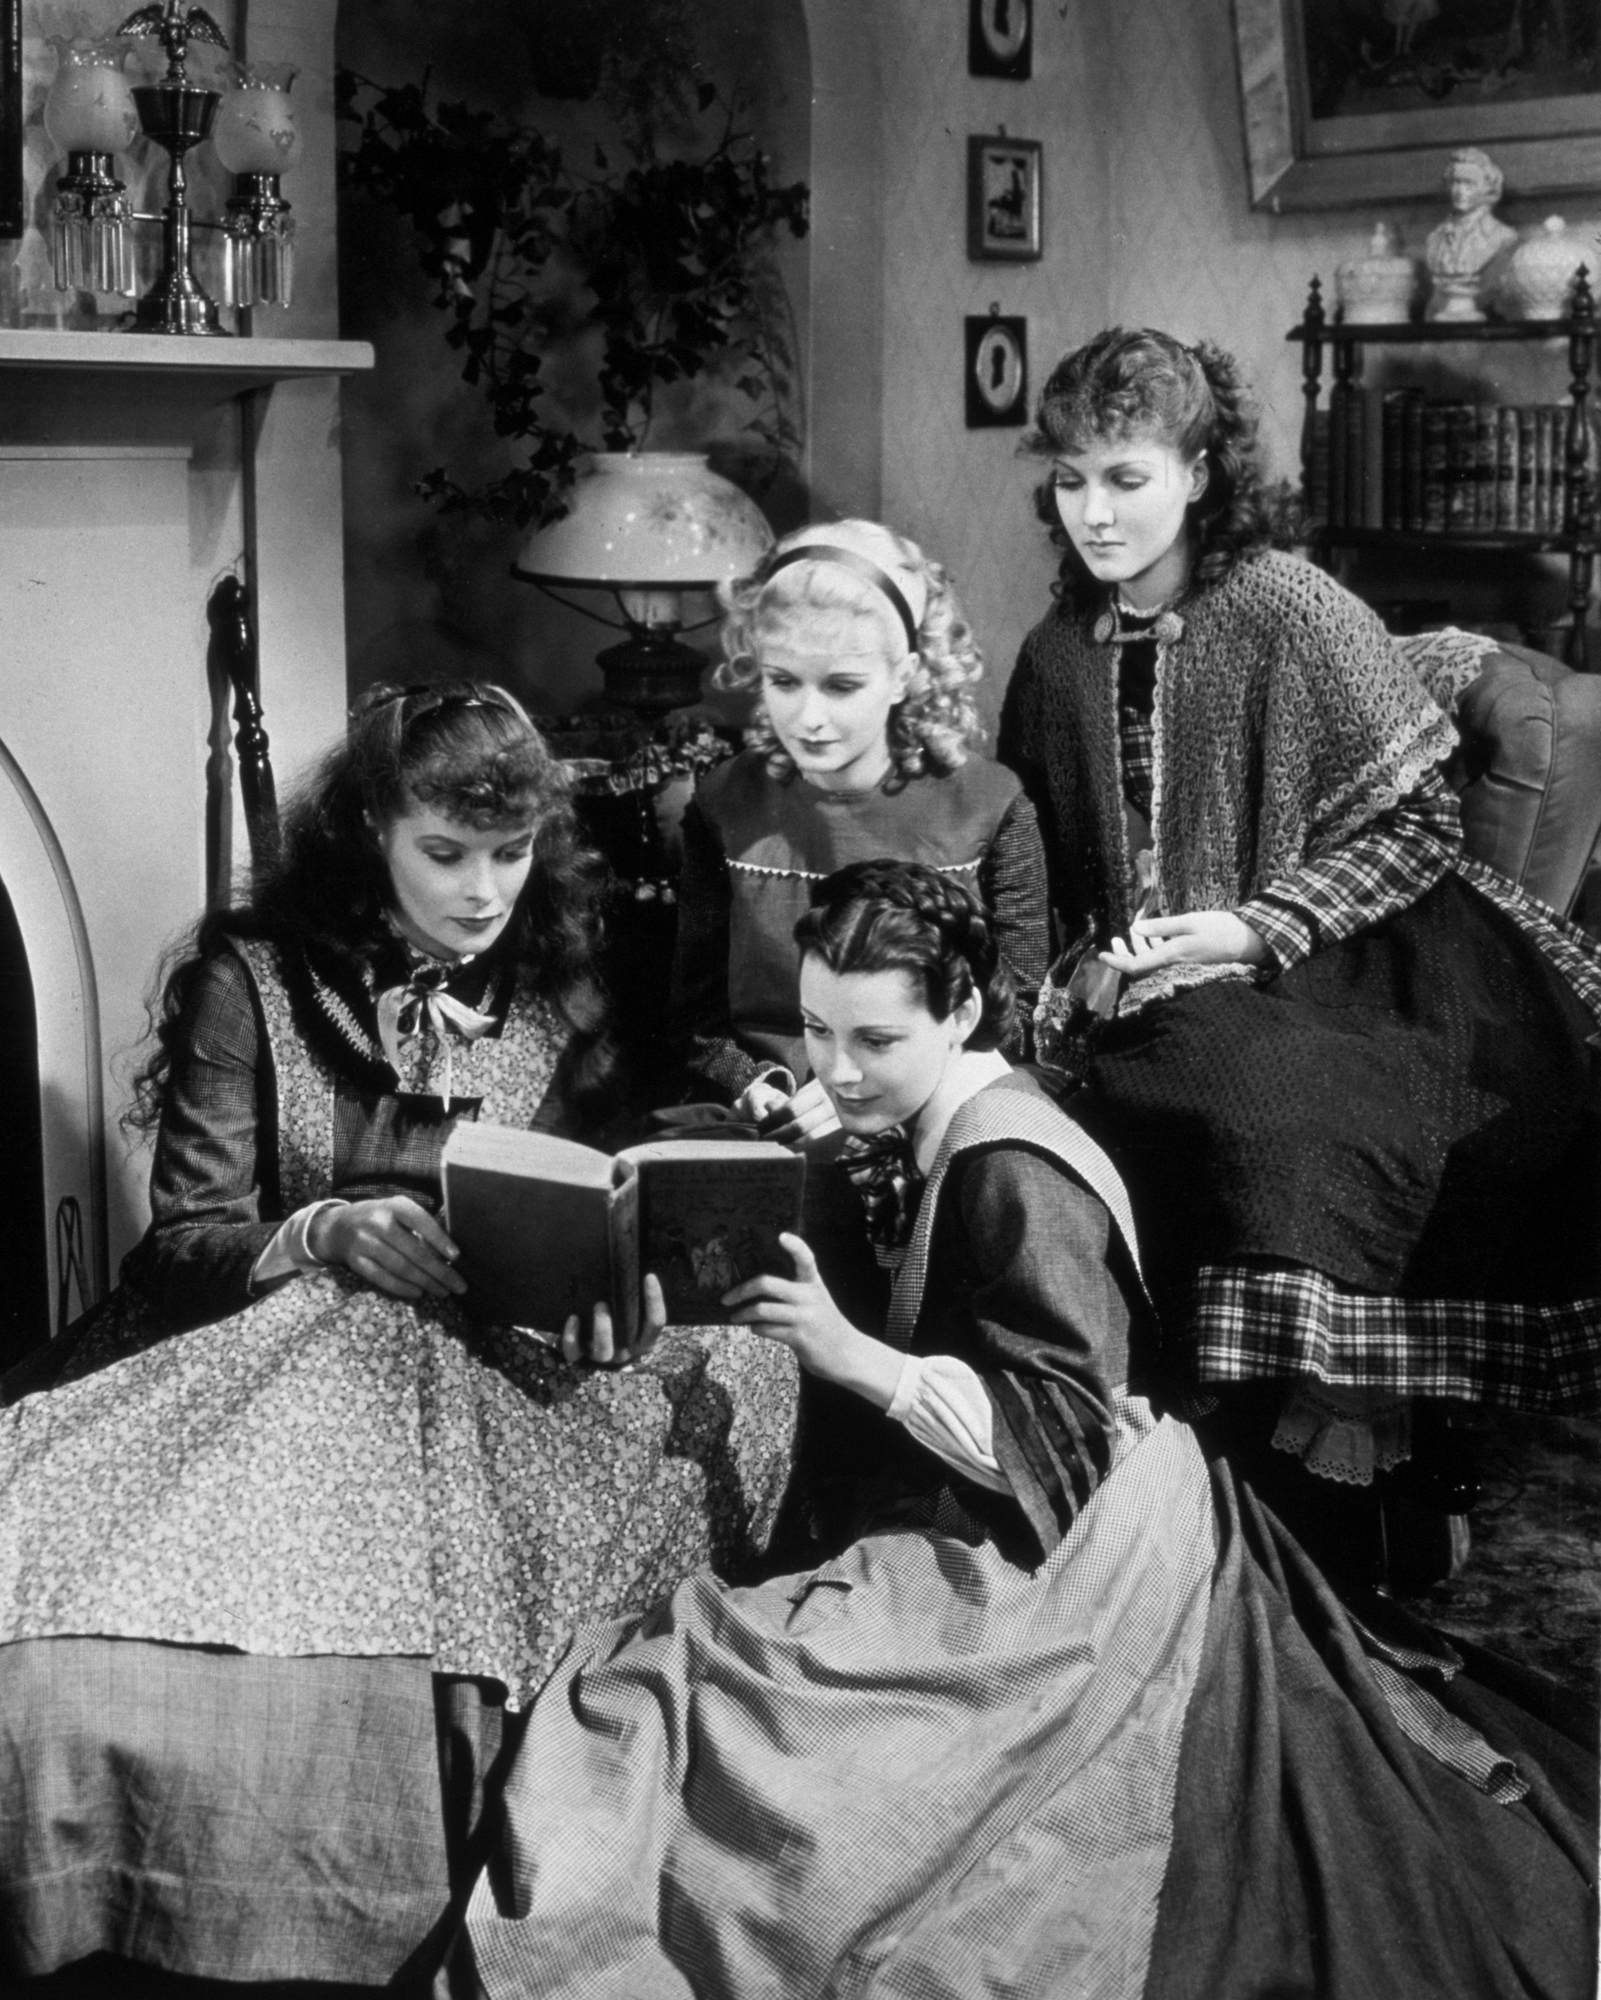 4. Little Women (1933 movie)